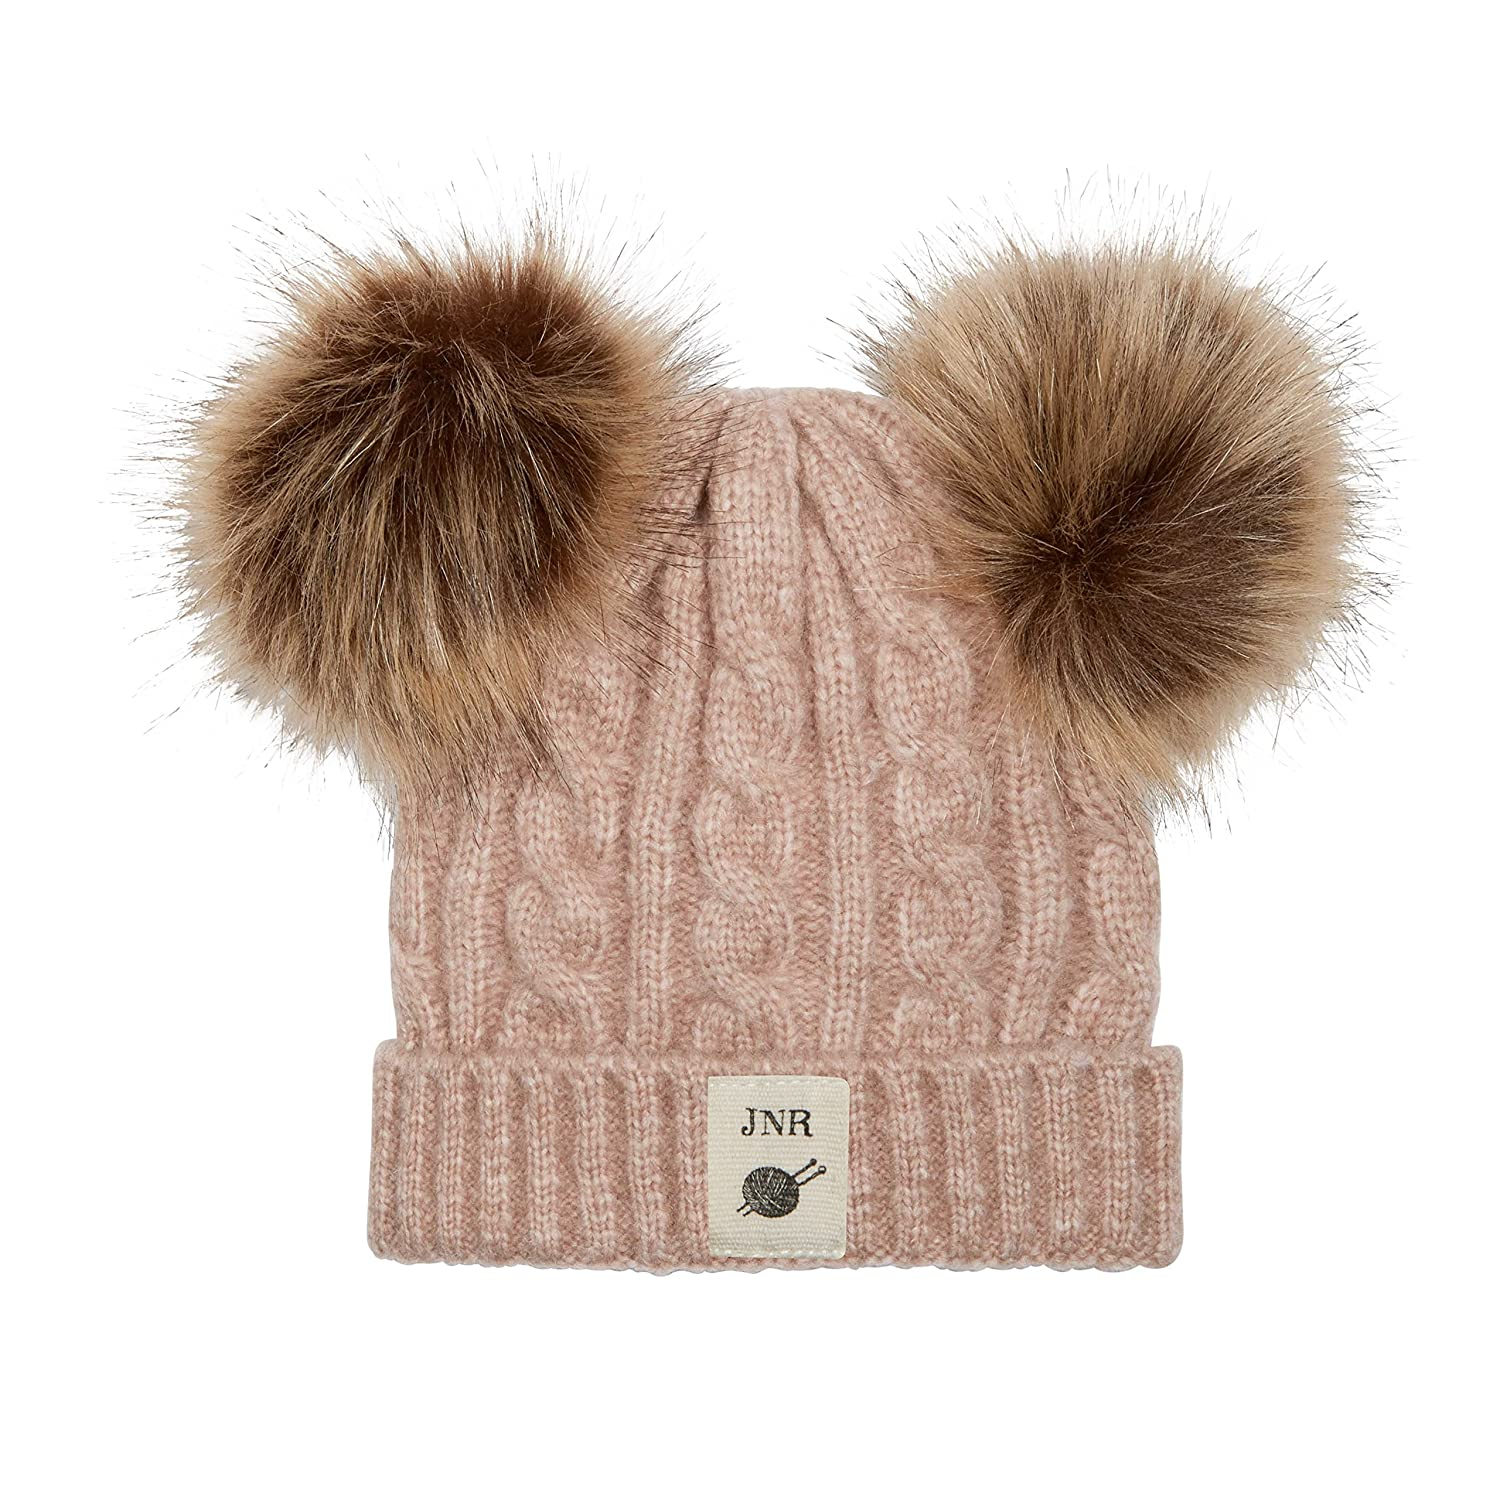 Aran Traditions Kids Cable Knit Faux Fur Double Pom Pom Hat 3-6 Years